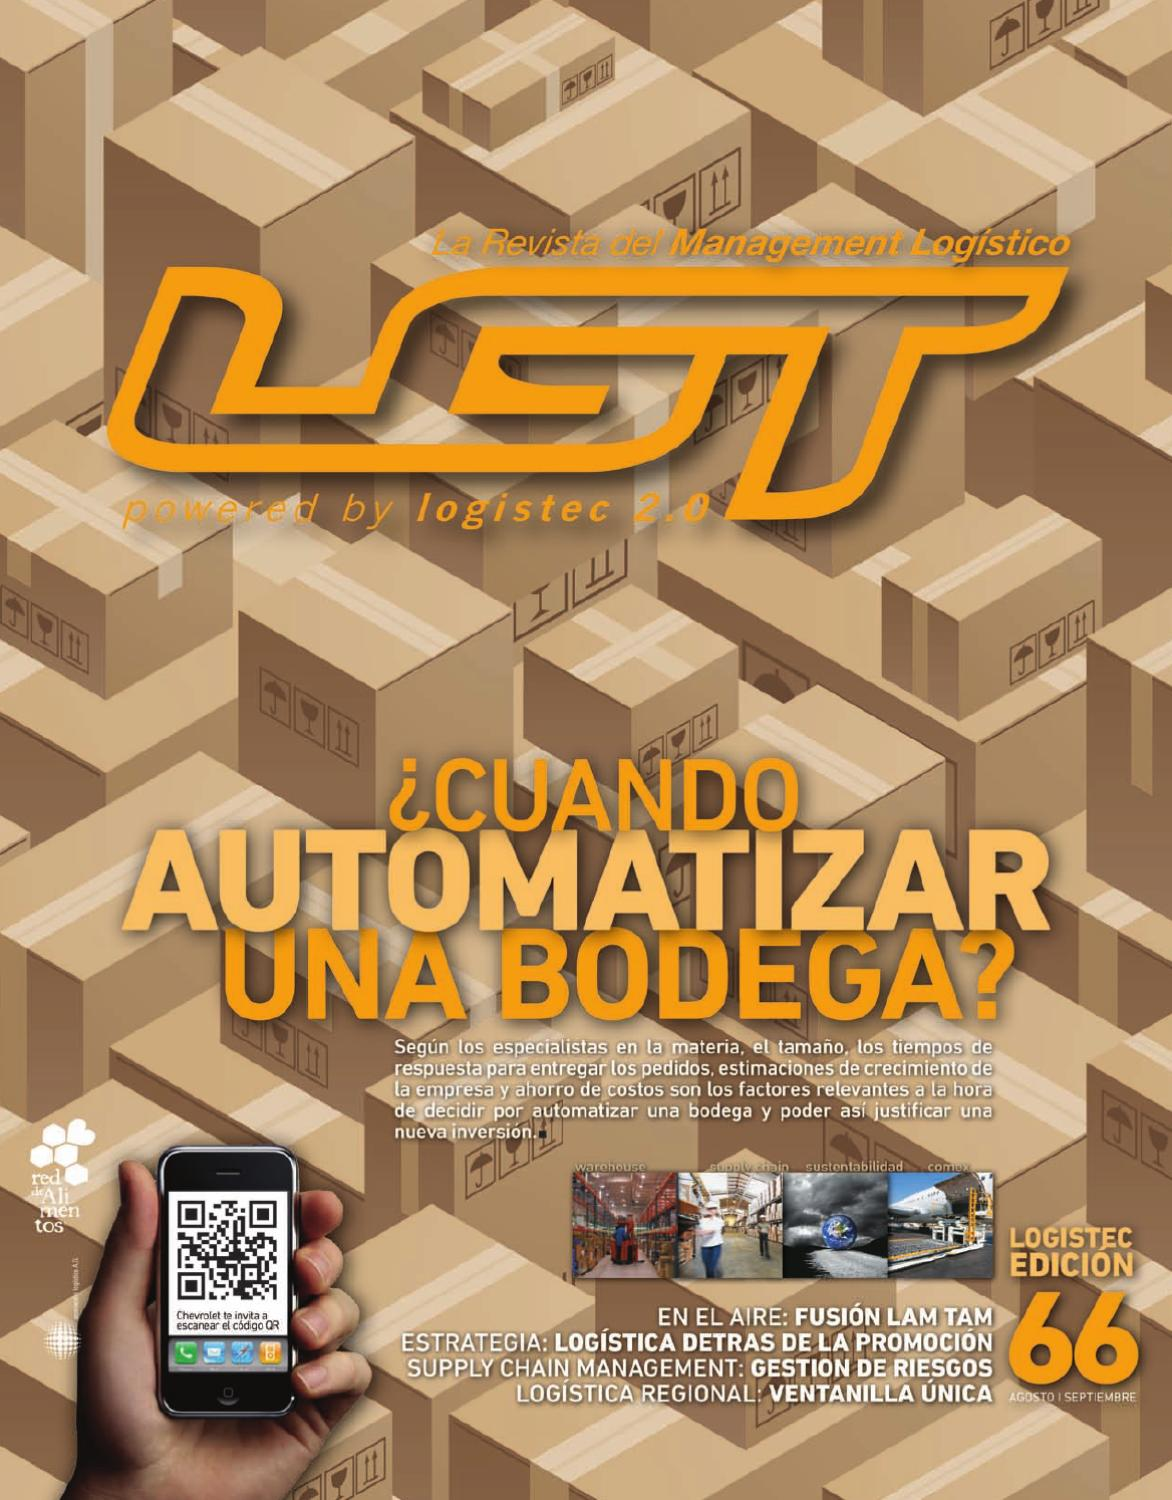 Groupalia Manta Electrica.Logistec Edicion 66 By 303 Editoriales S A Issuu